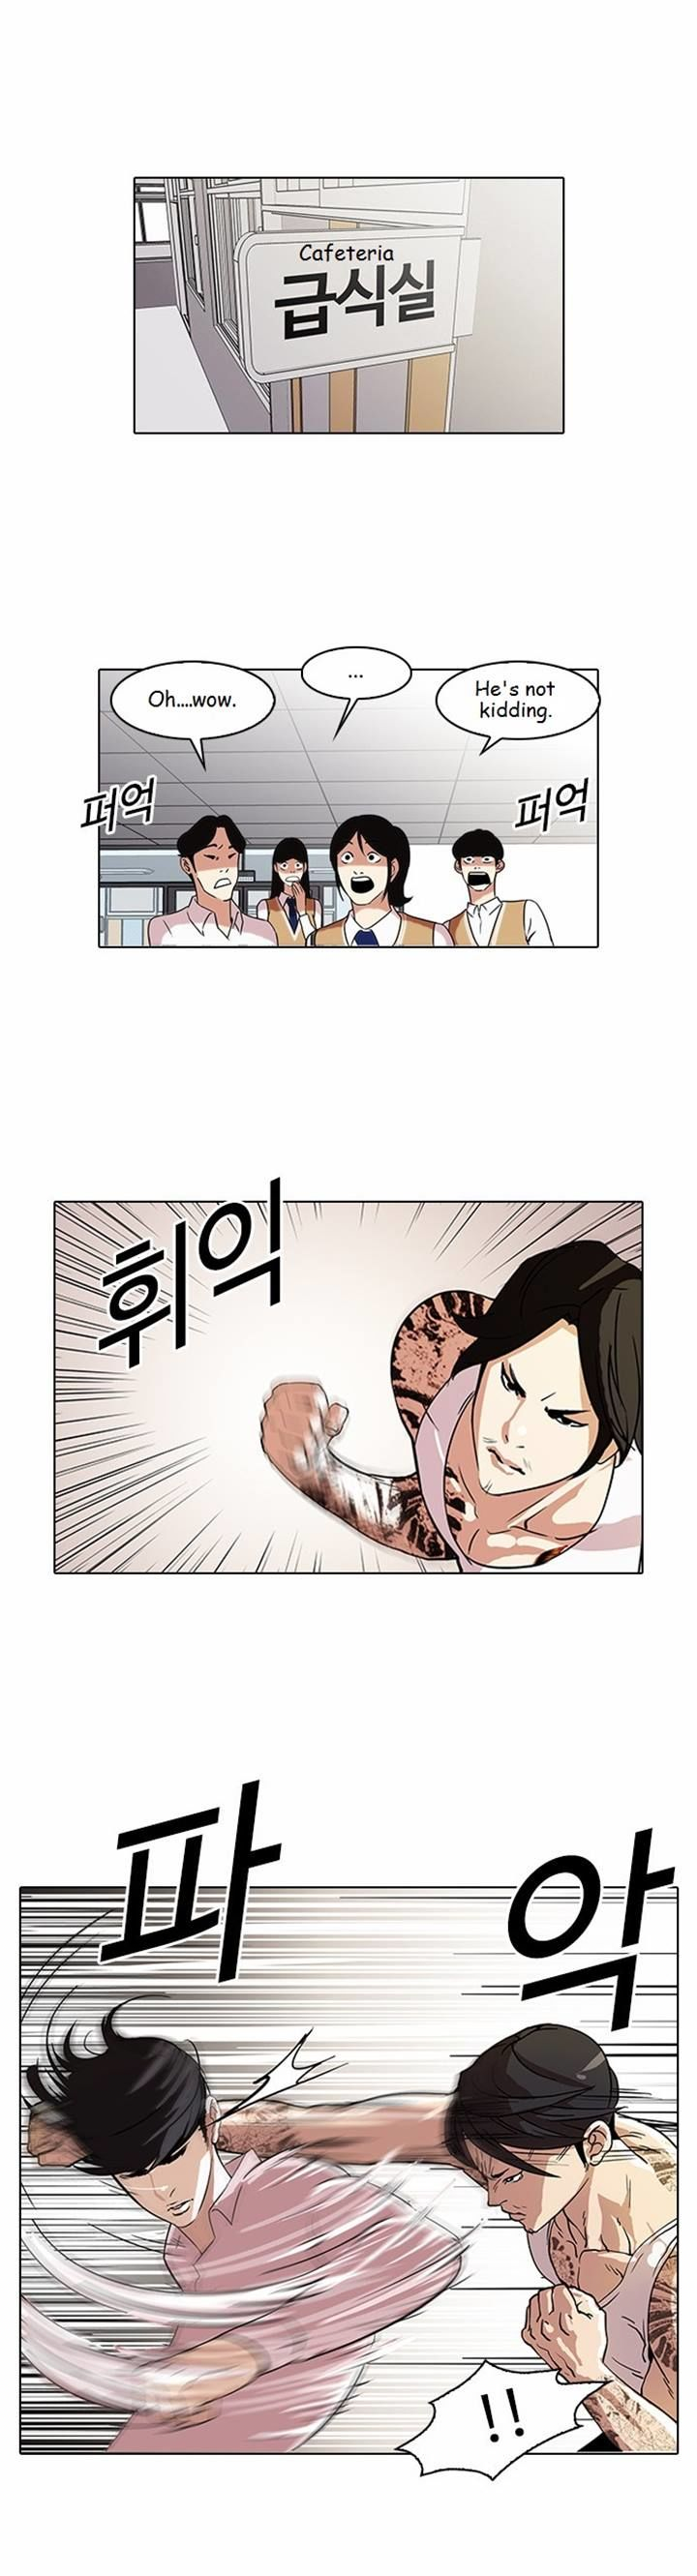 Lookism 79 Page 1